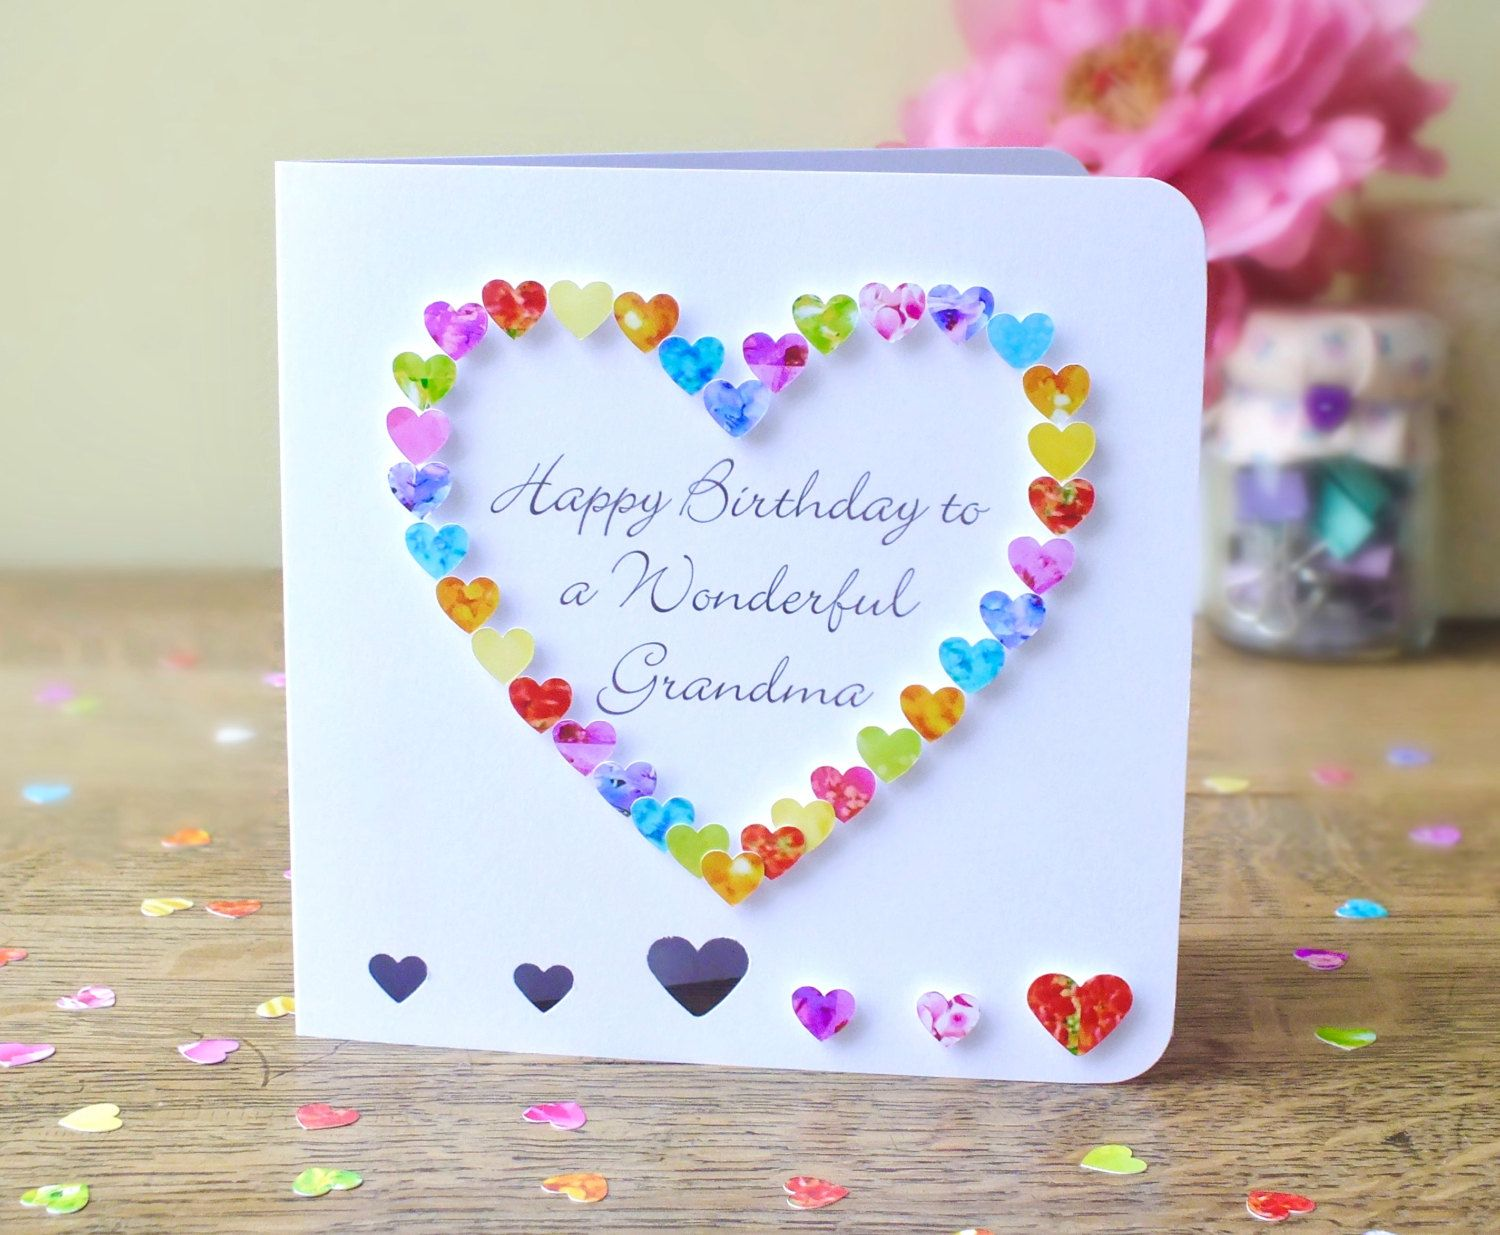 Stupendous Grandma Birthday Card Handmade Birthday Card For Gran Granny Funny Birthday Cards Online Inifofree Goldxyz